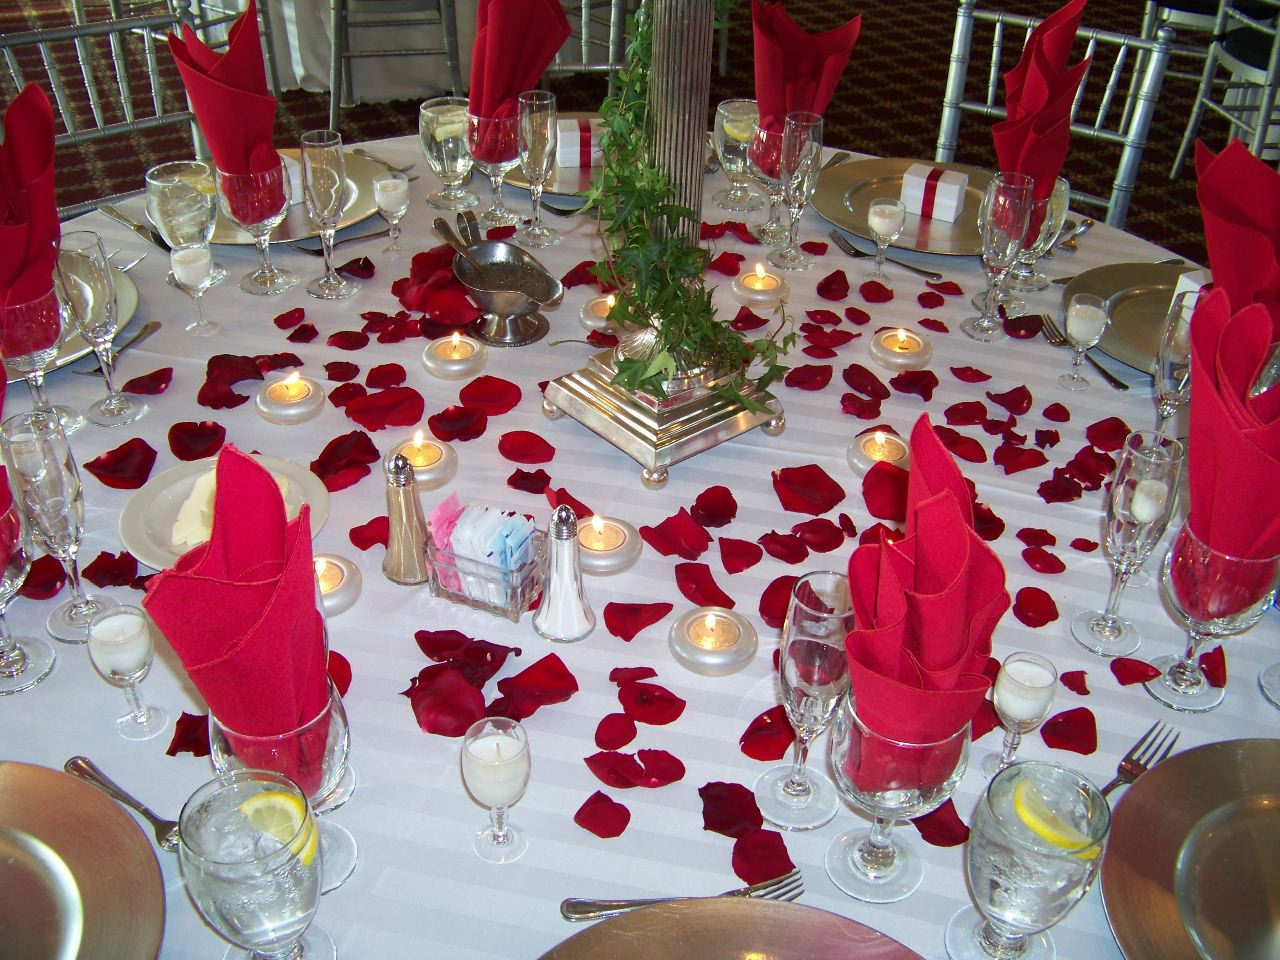 Bridal Party Table Decorations